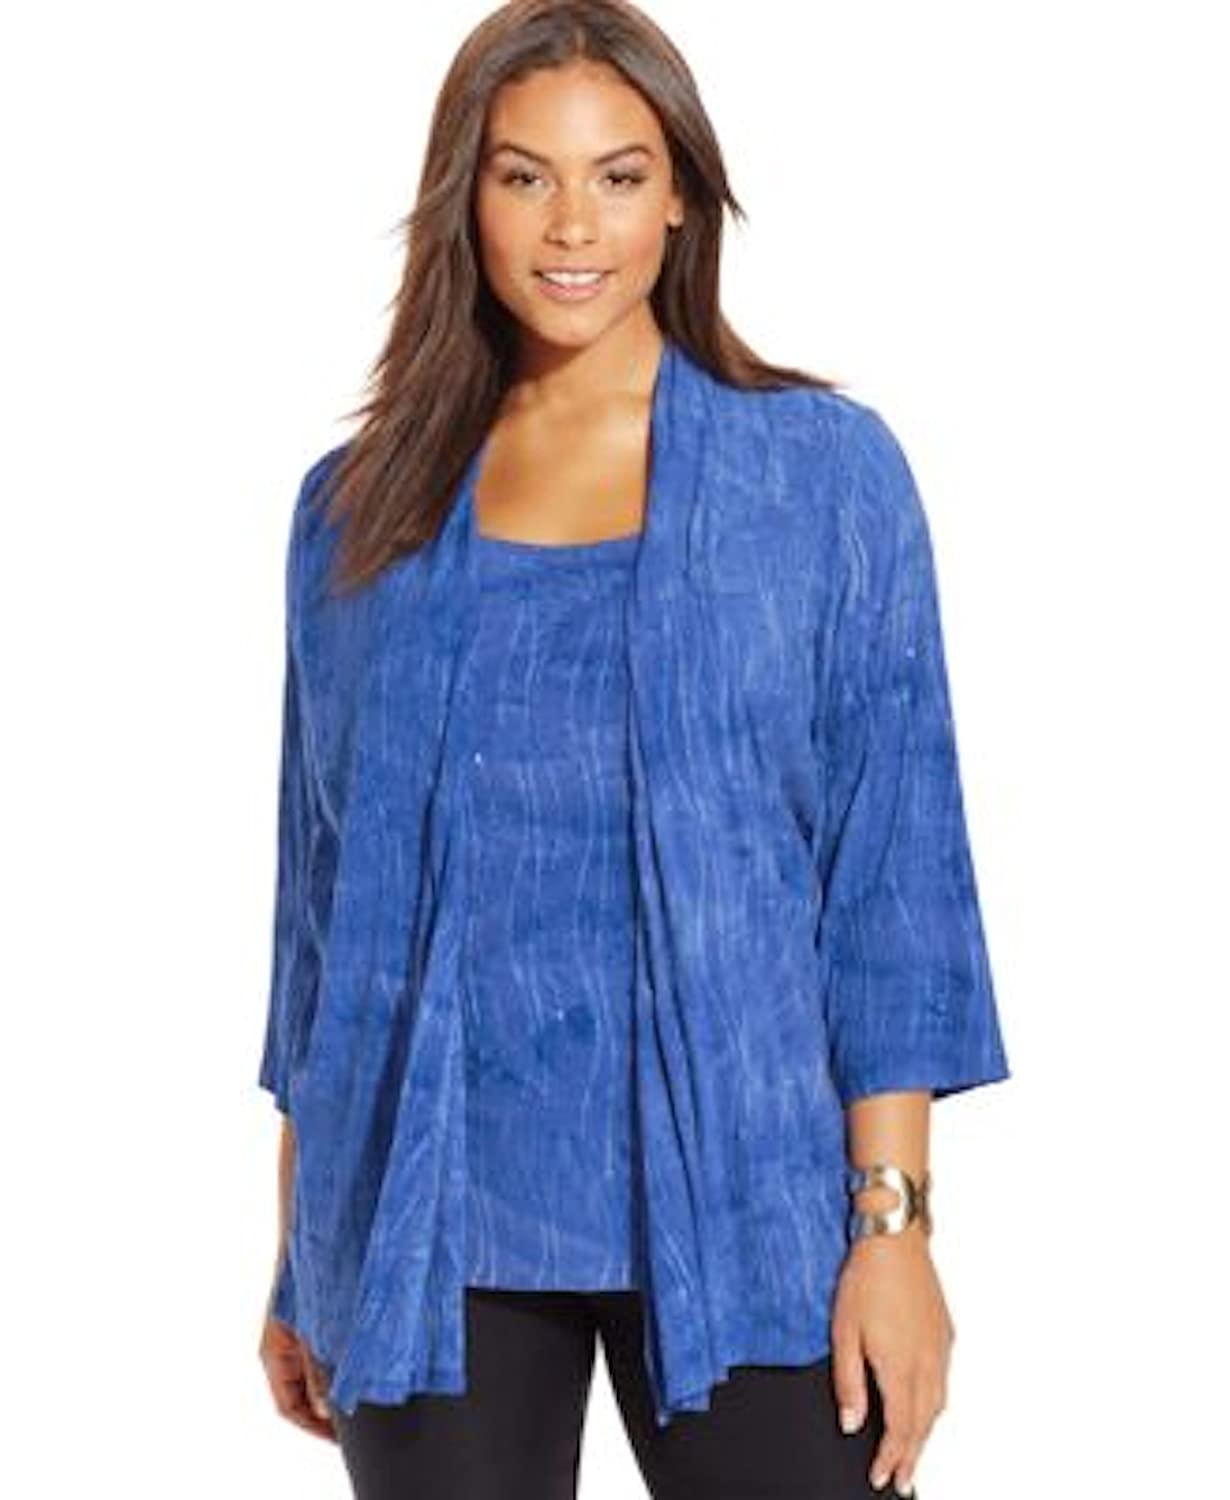 JM Collection Womens Plus 2 In 1 Embellished Casual Top Blue 2X